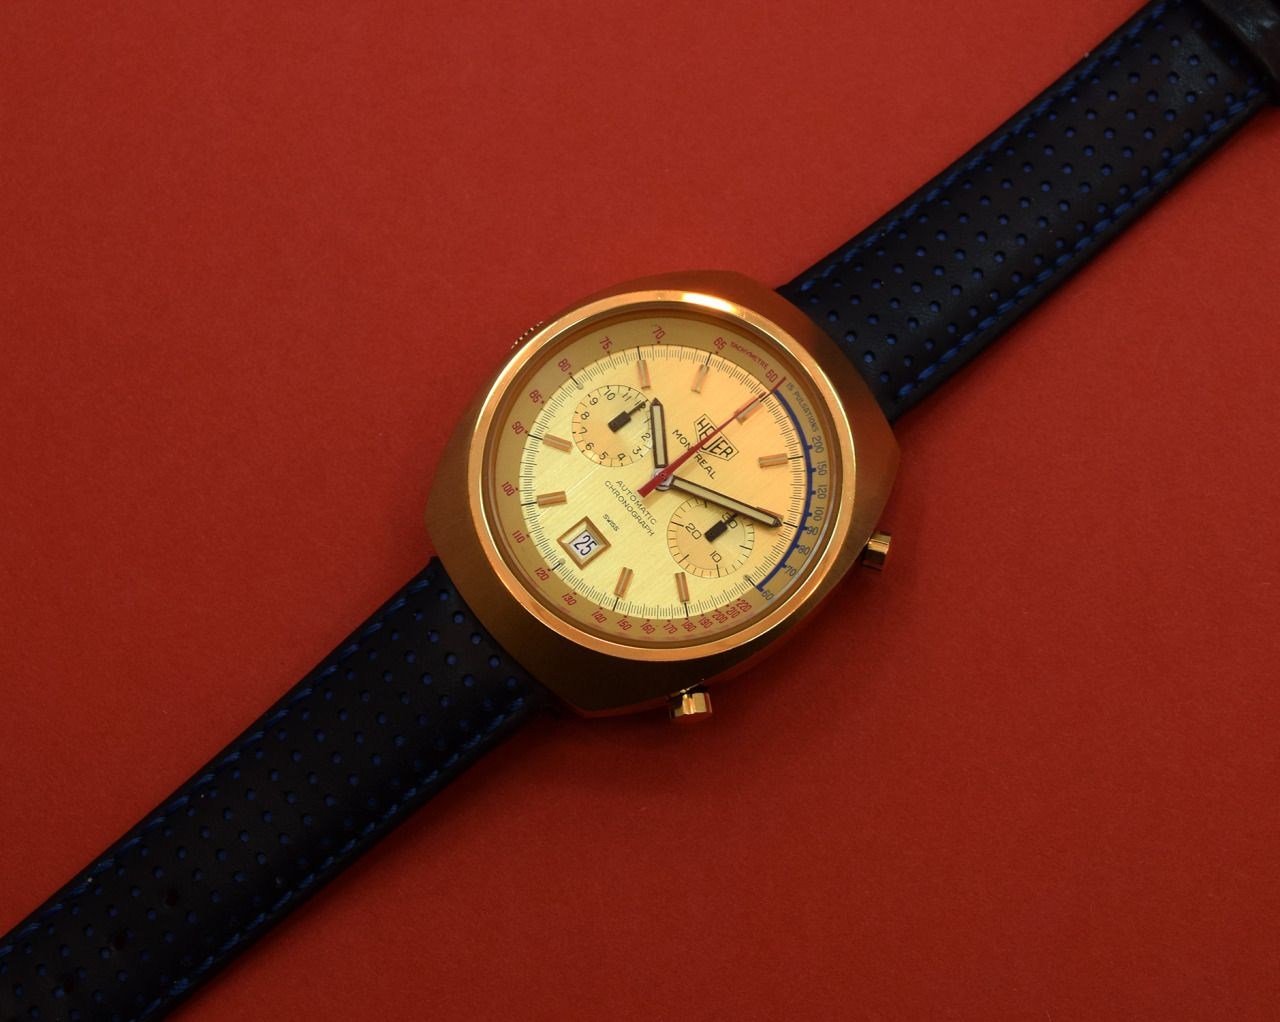 A 1973 yellow gold-plated vintage Heuer Montreal Chronograph Ref. 110505  with a date